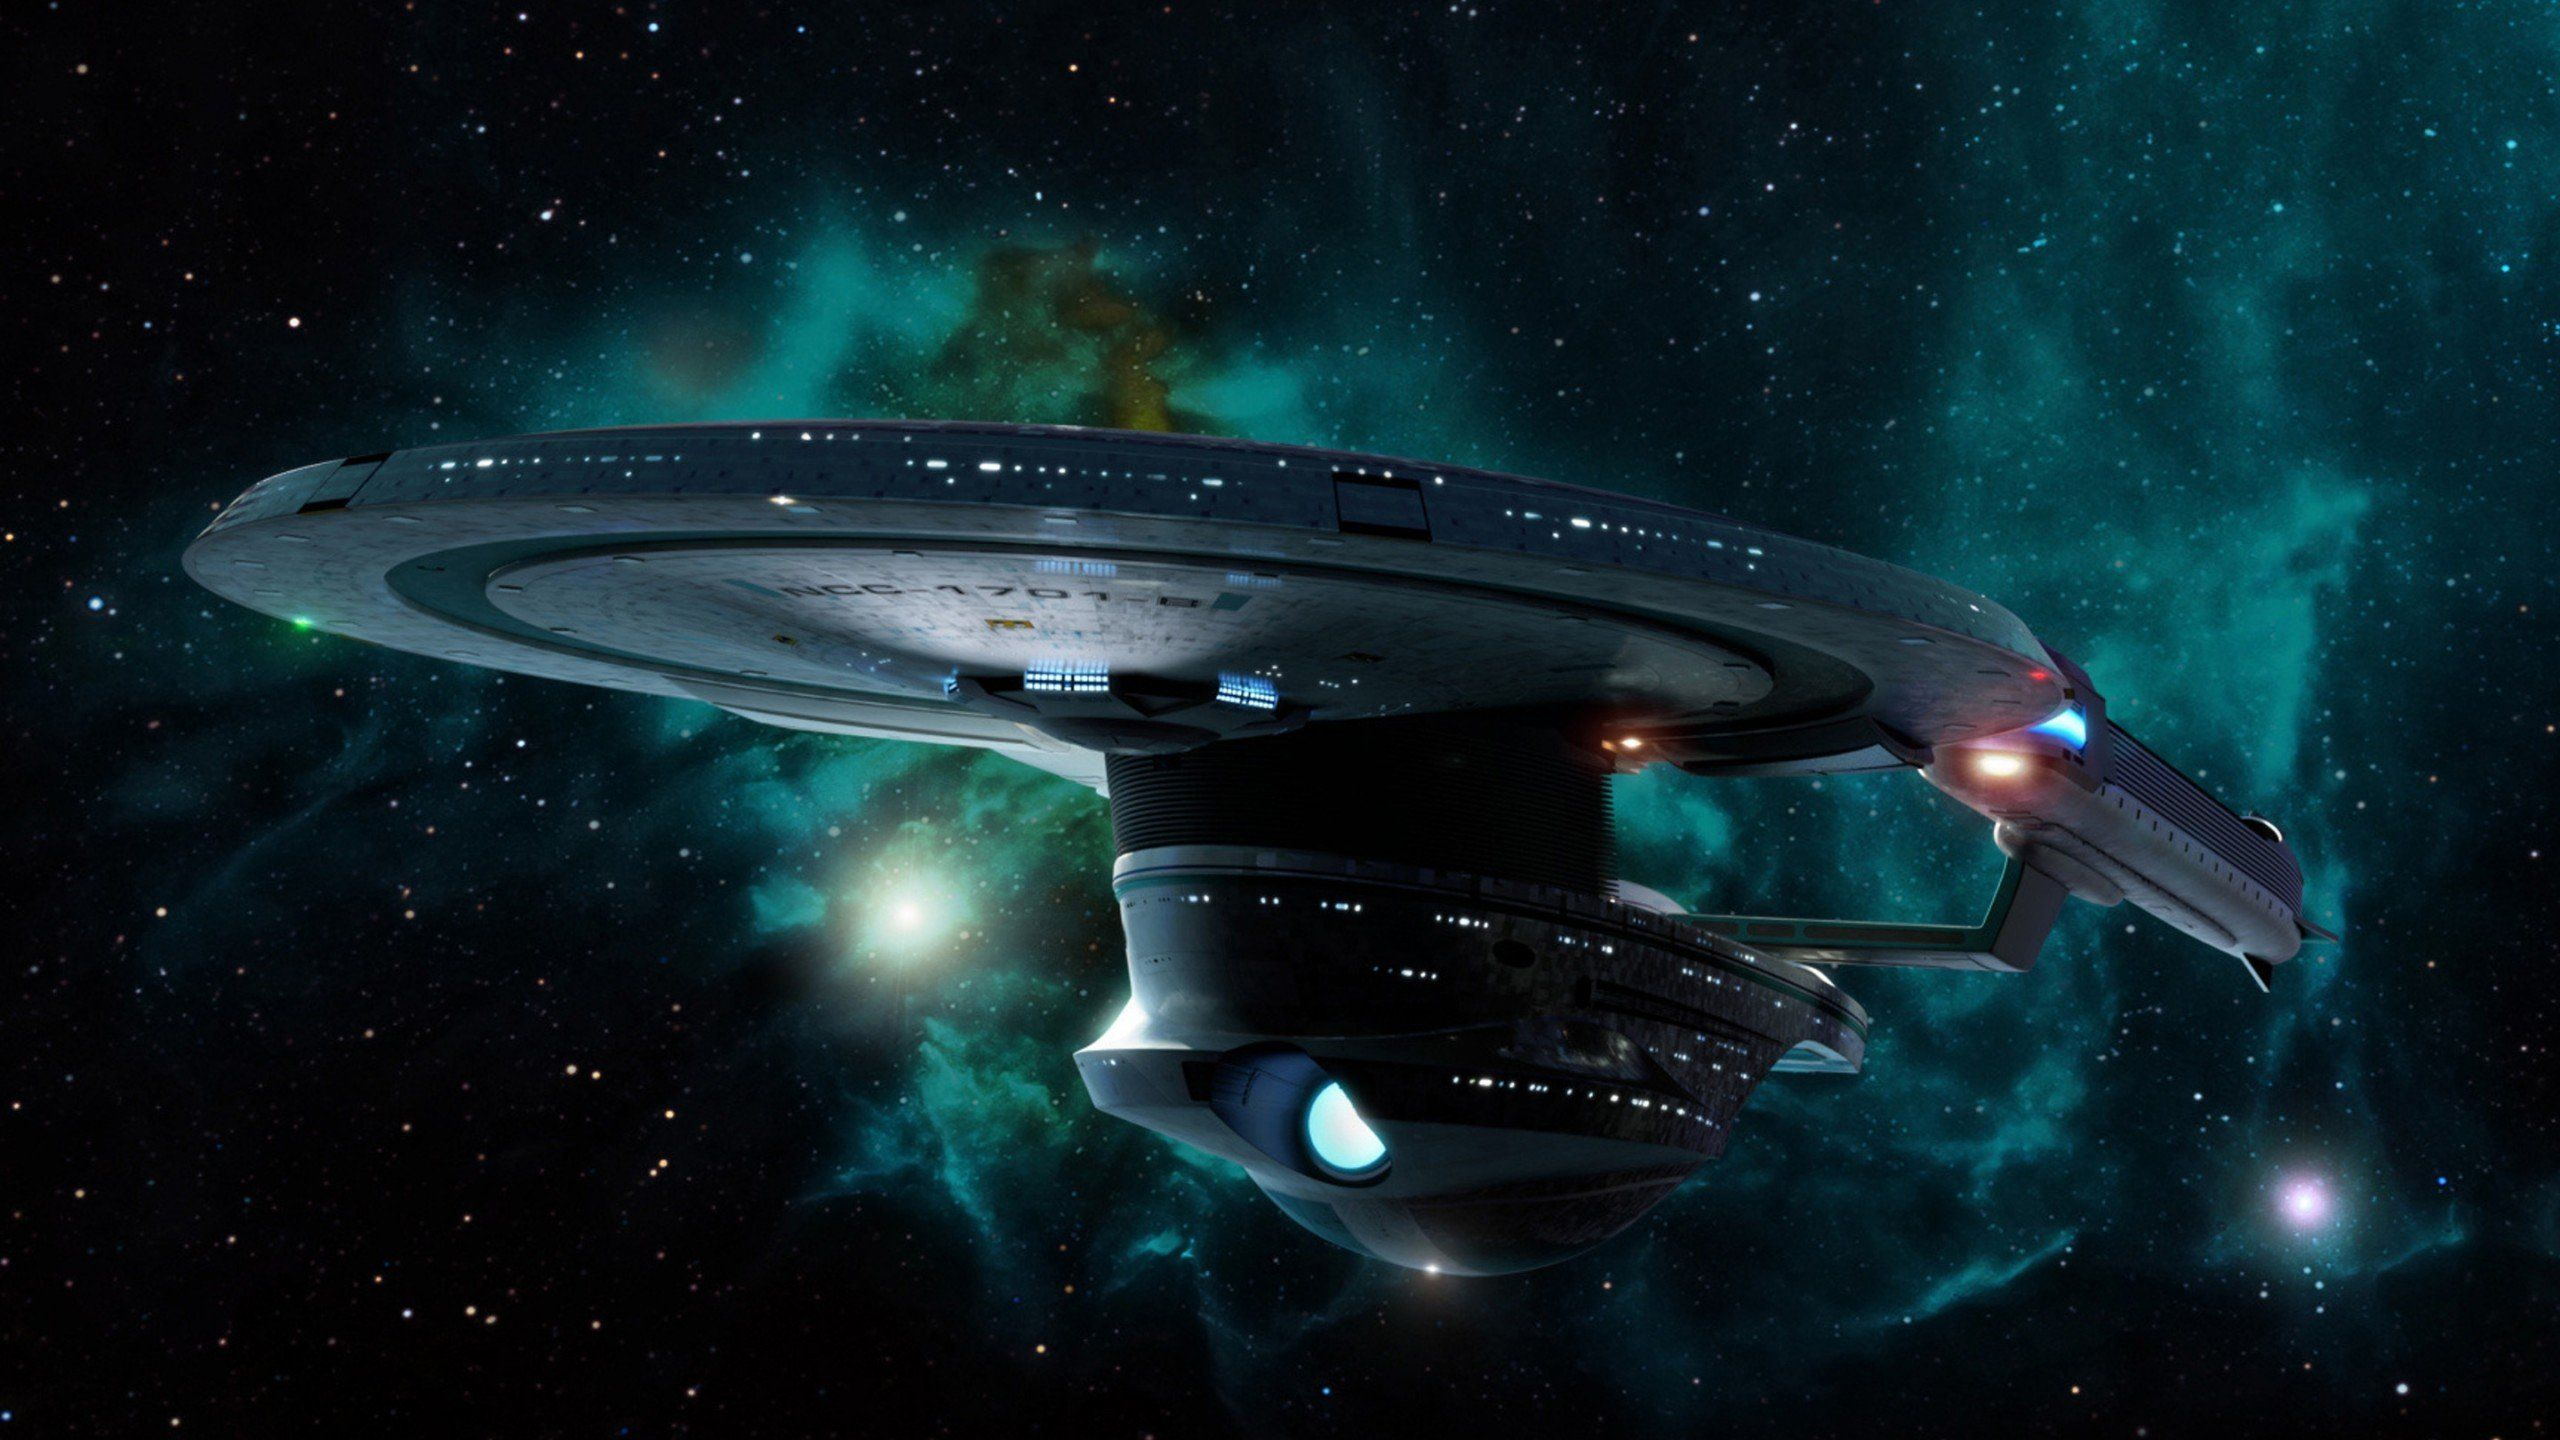 Domain For Sale Star Trek Wallpaper Star Trek Star Trek Starships